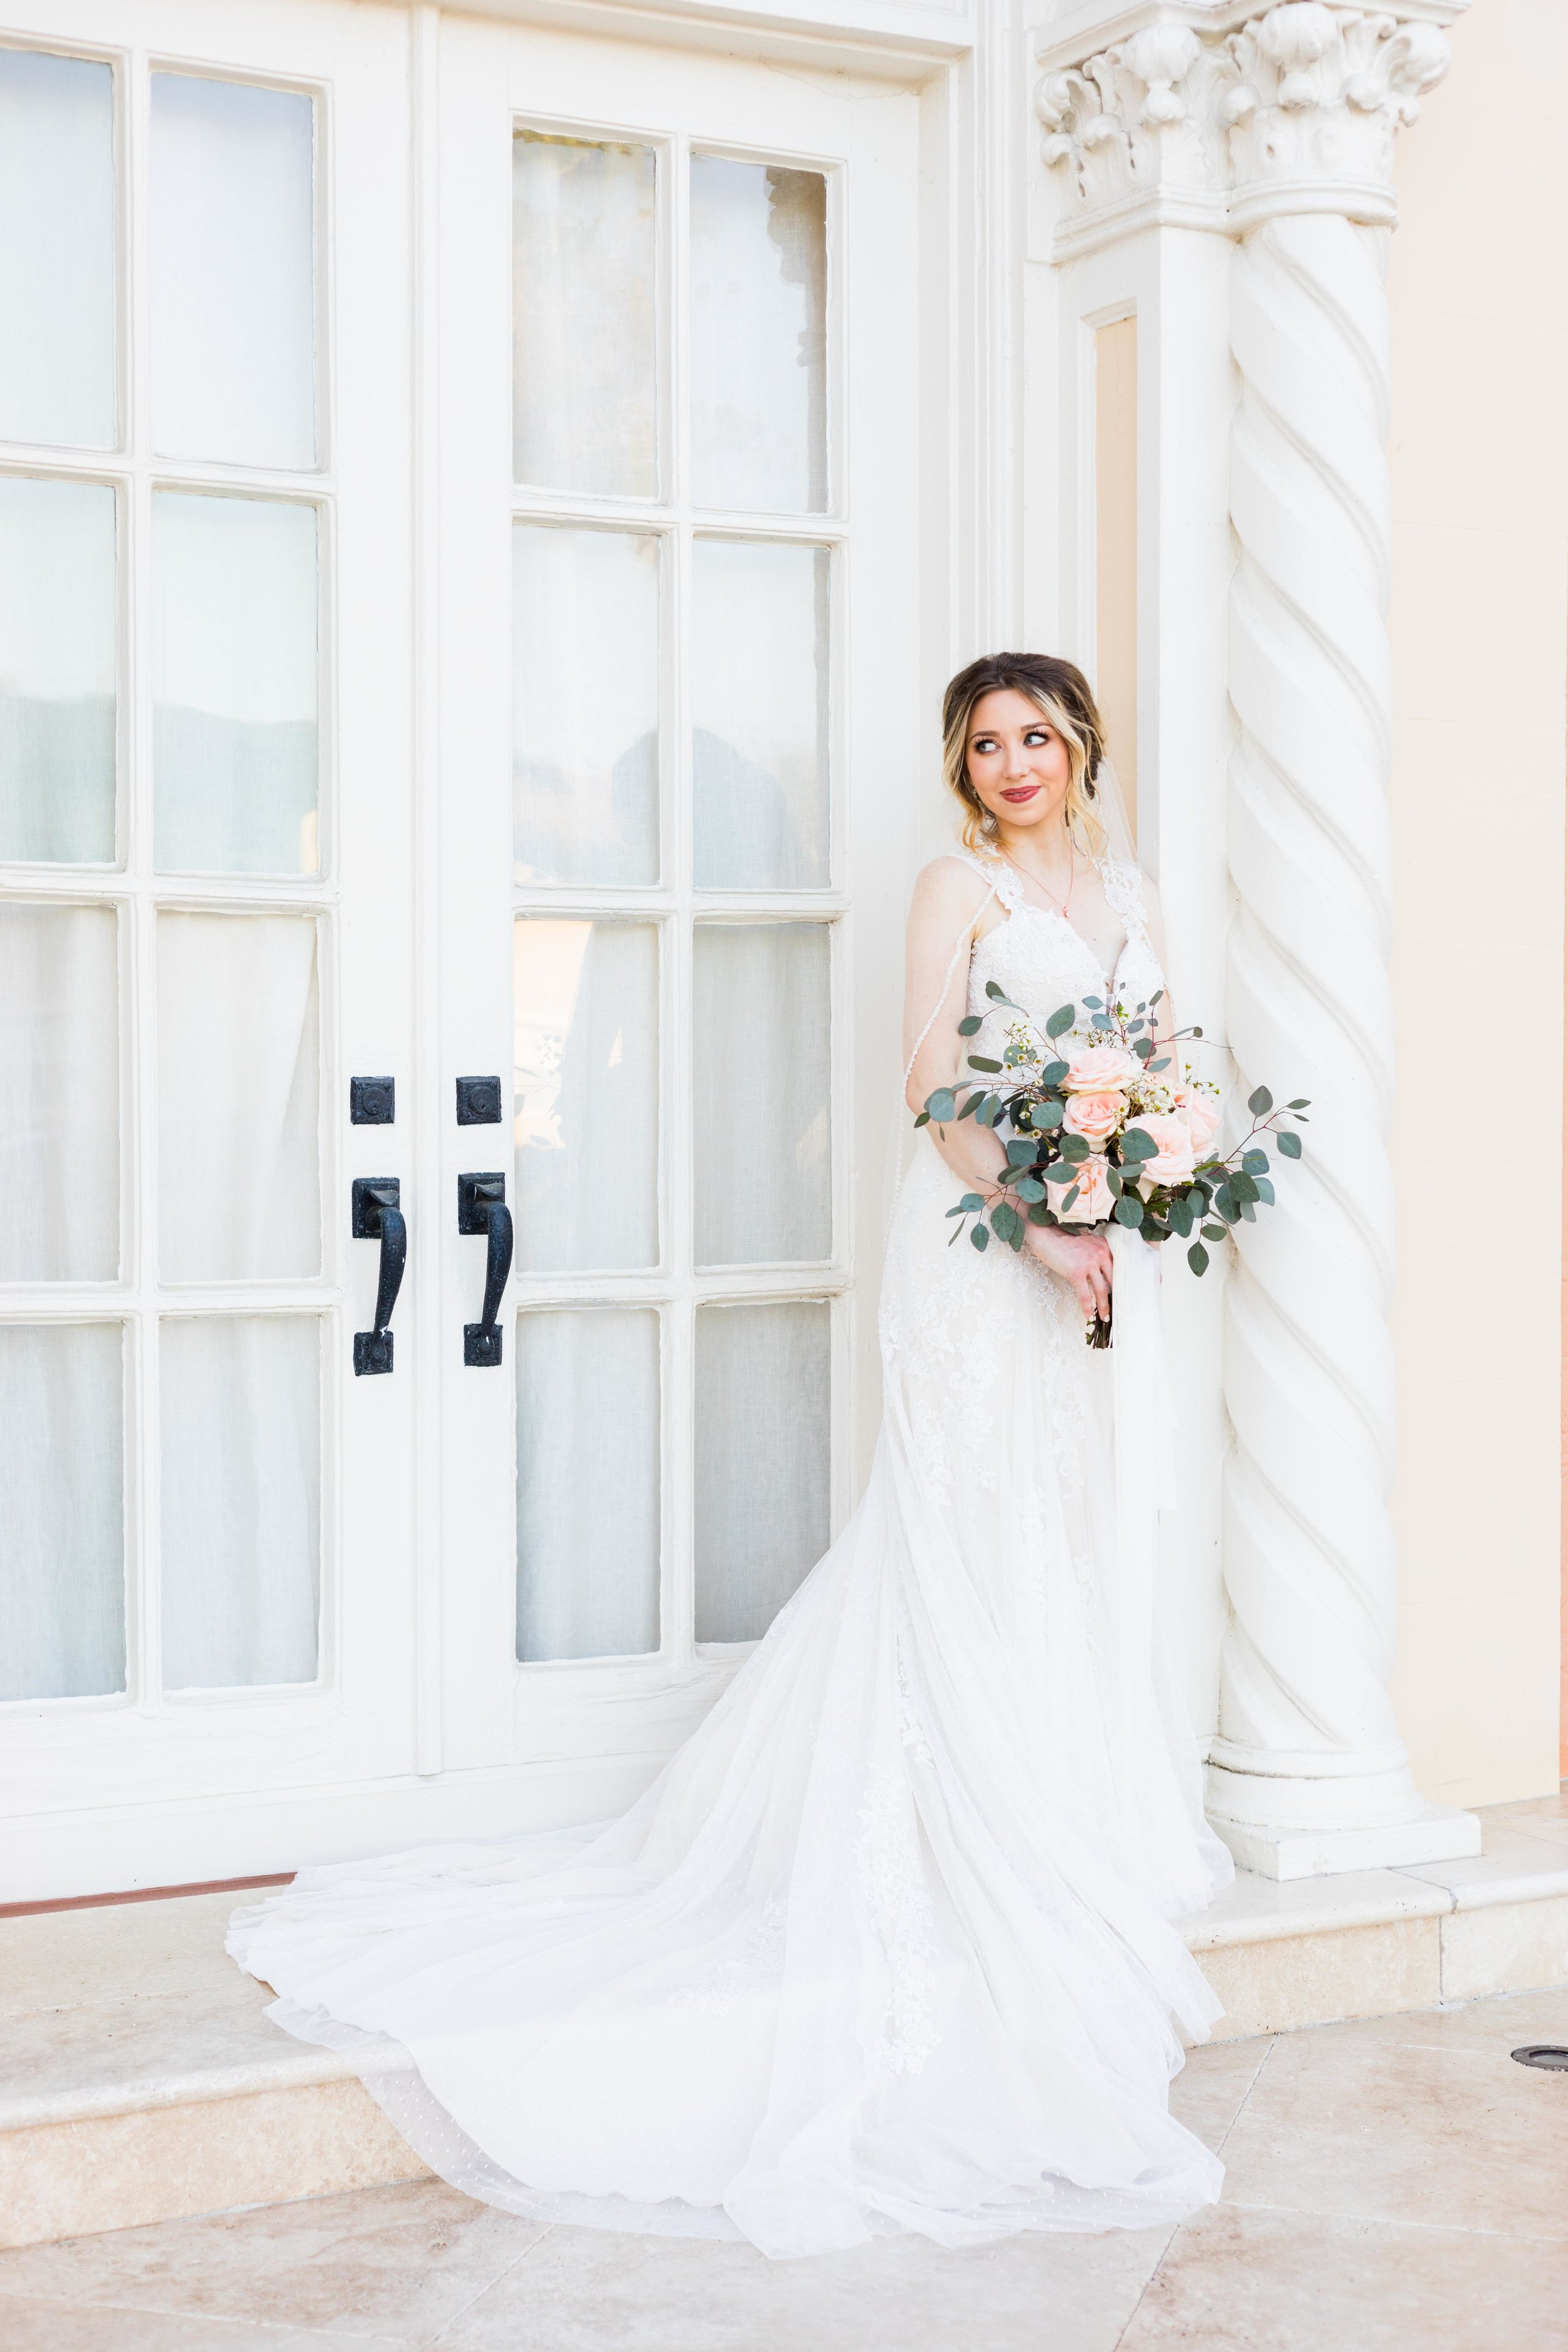 1. You get the opportunity to wear your wedding dress more than once on your wedding day! - You paid a pretty penny for it, might as well get your money's worth! :D LOL!